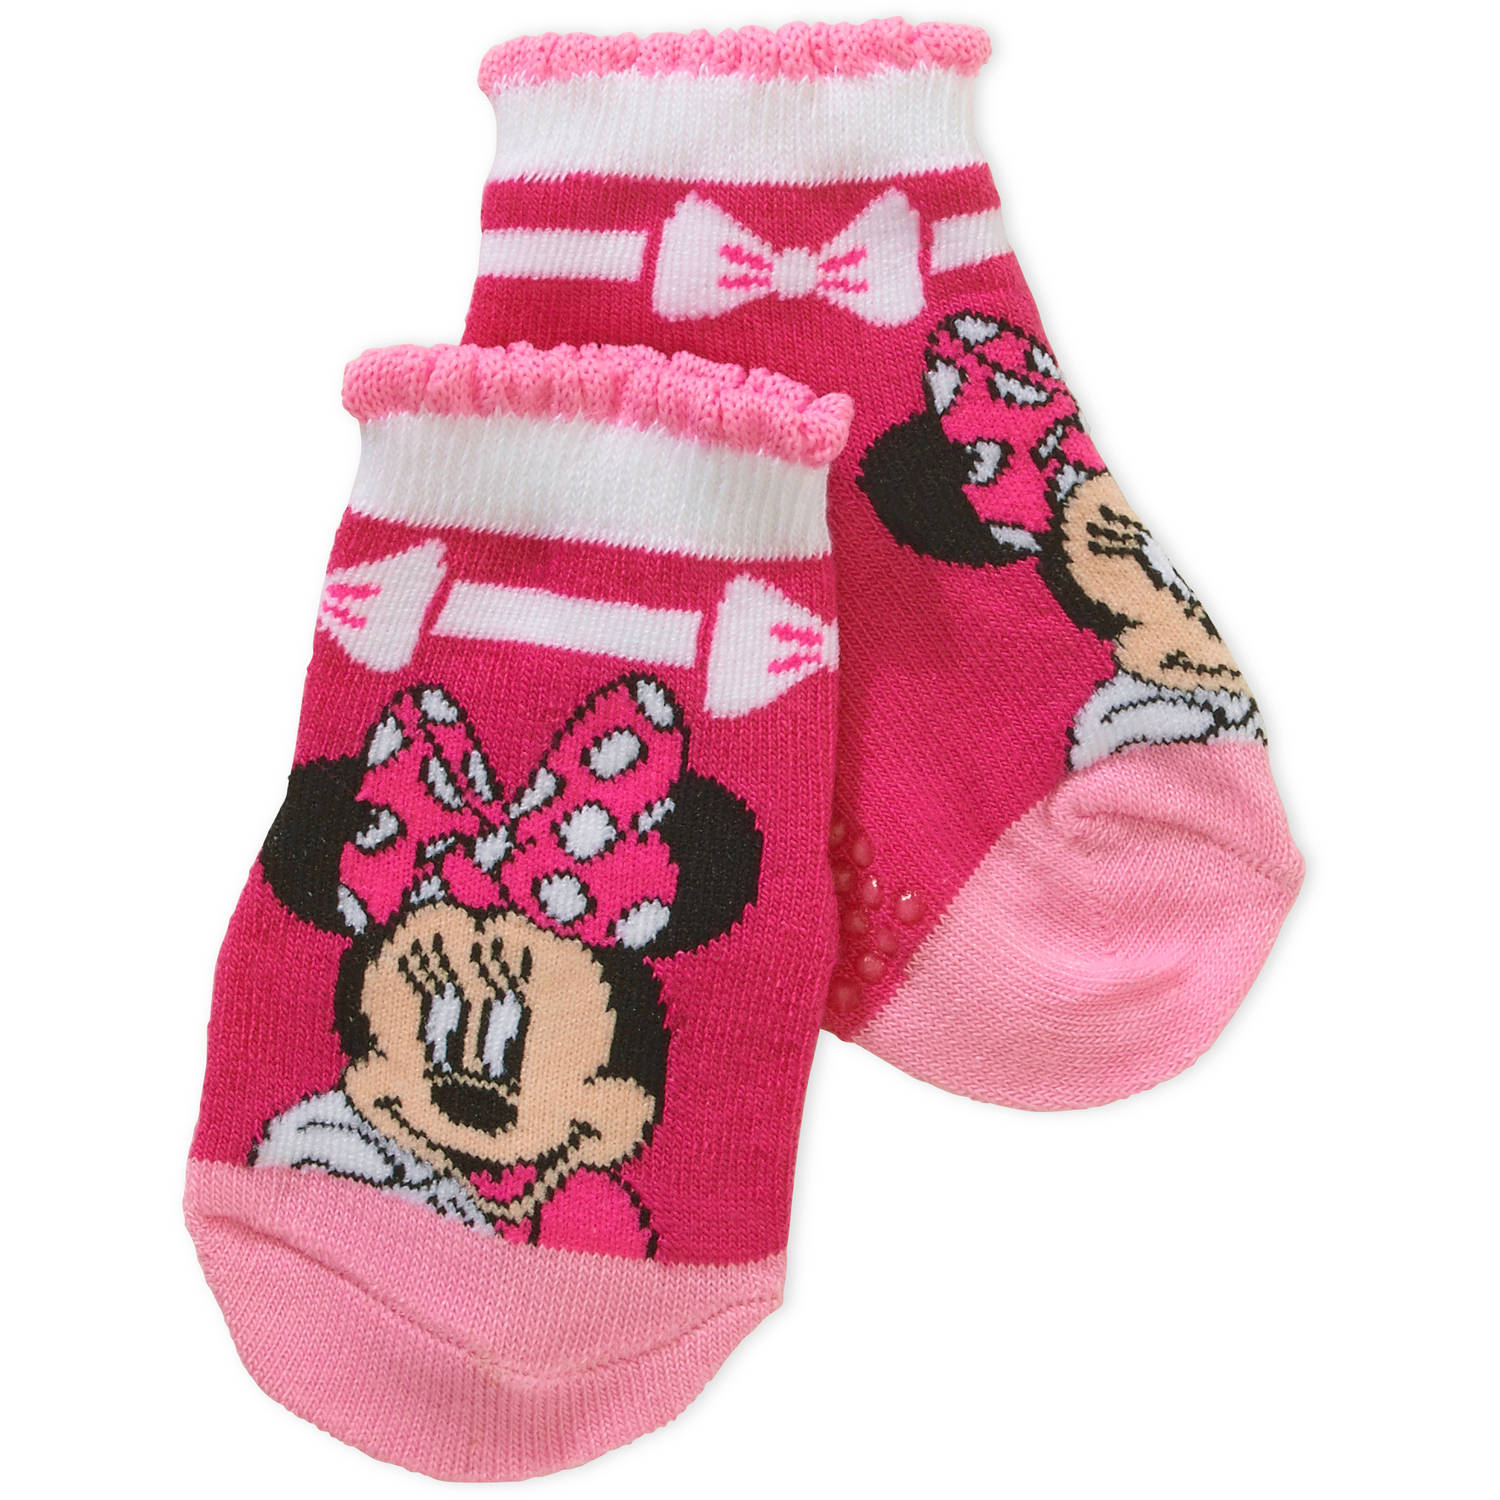 Minnie Mouse Toddler Girl Quarter Socks, 3-Pack